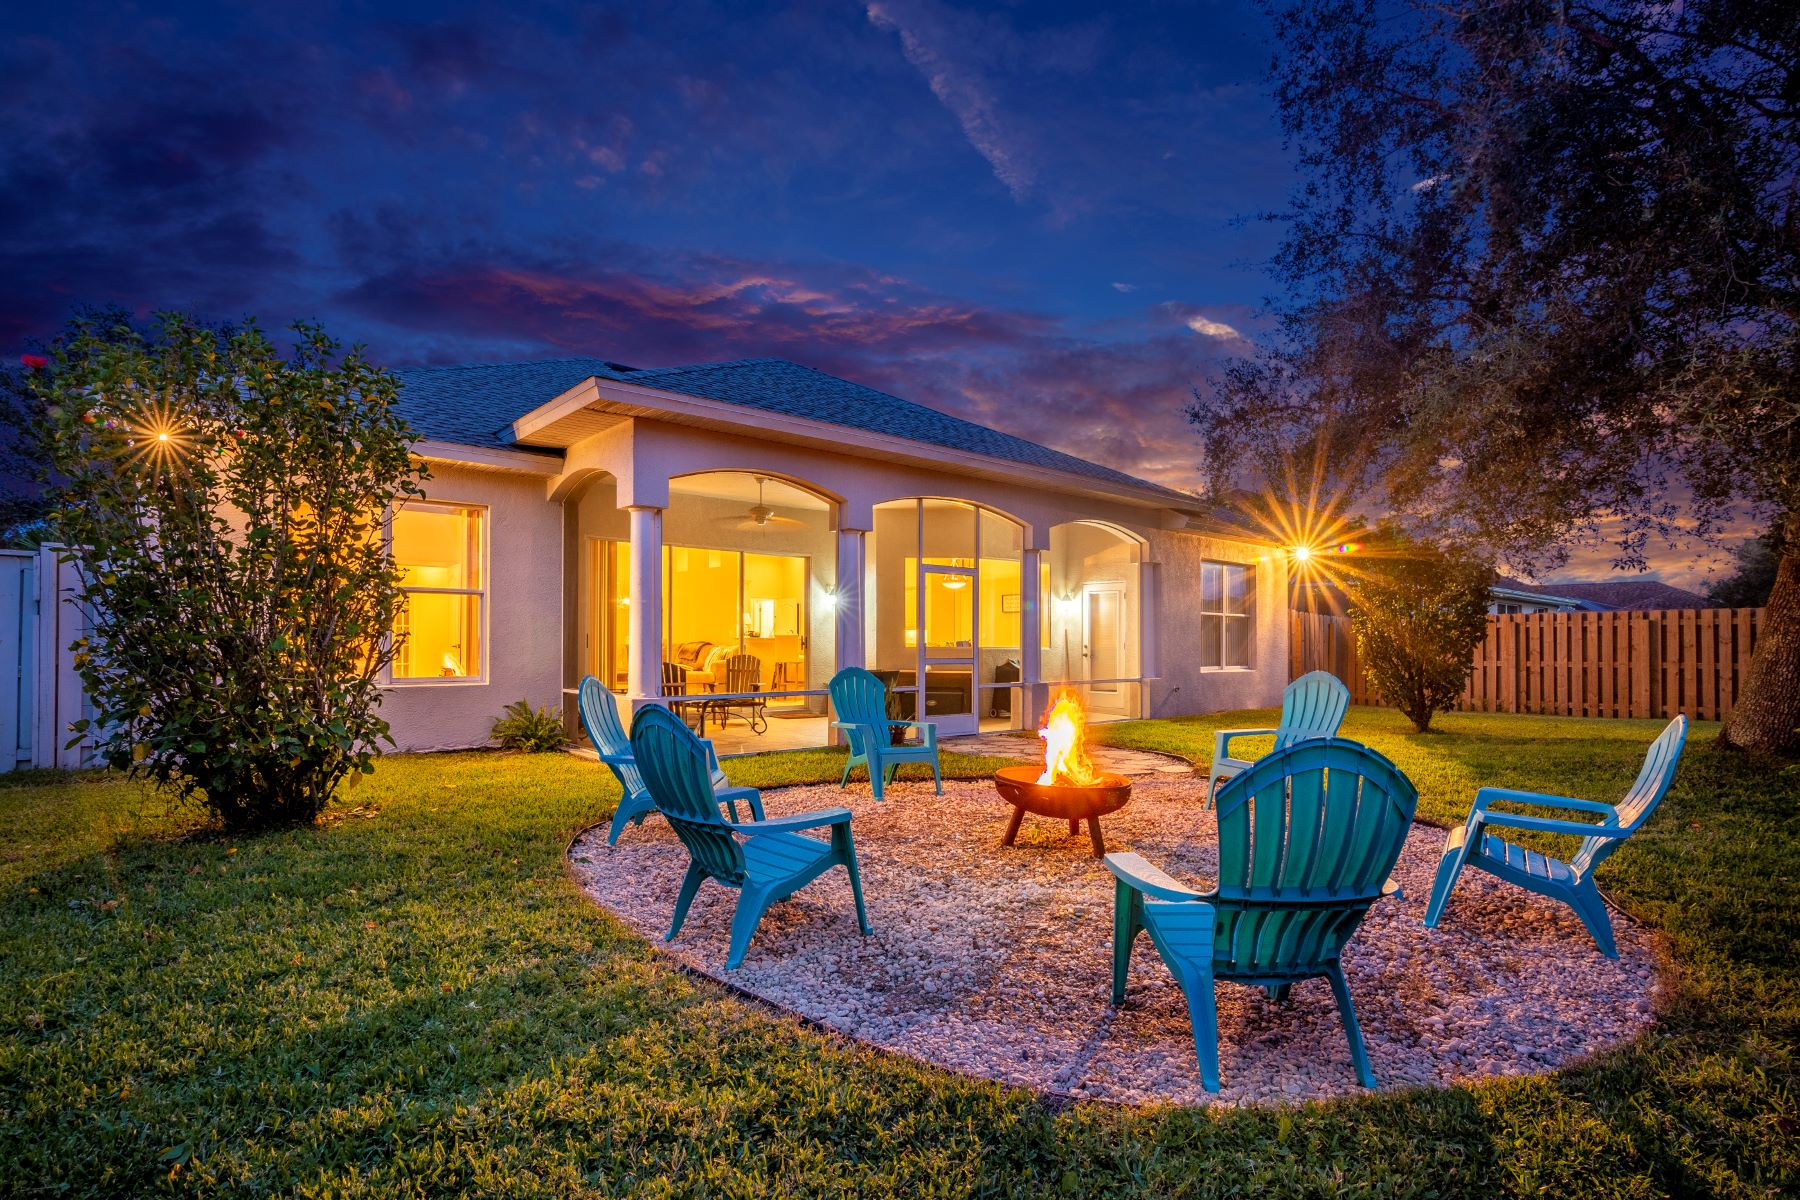 Single Family Homes for Sale at 2611 Canterbury Circle Rockledge, Florida 32955 United States